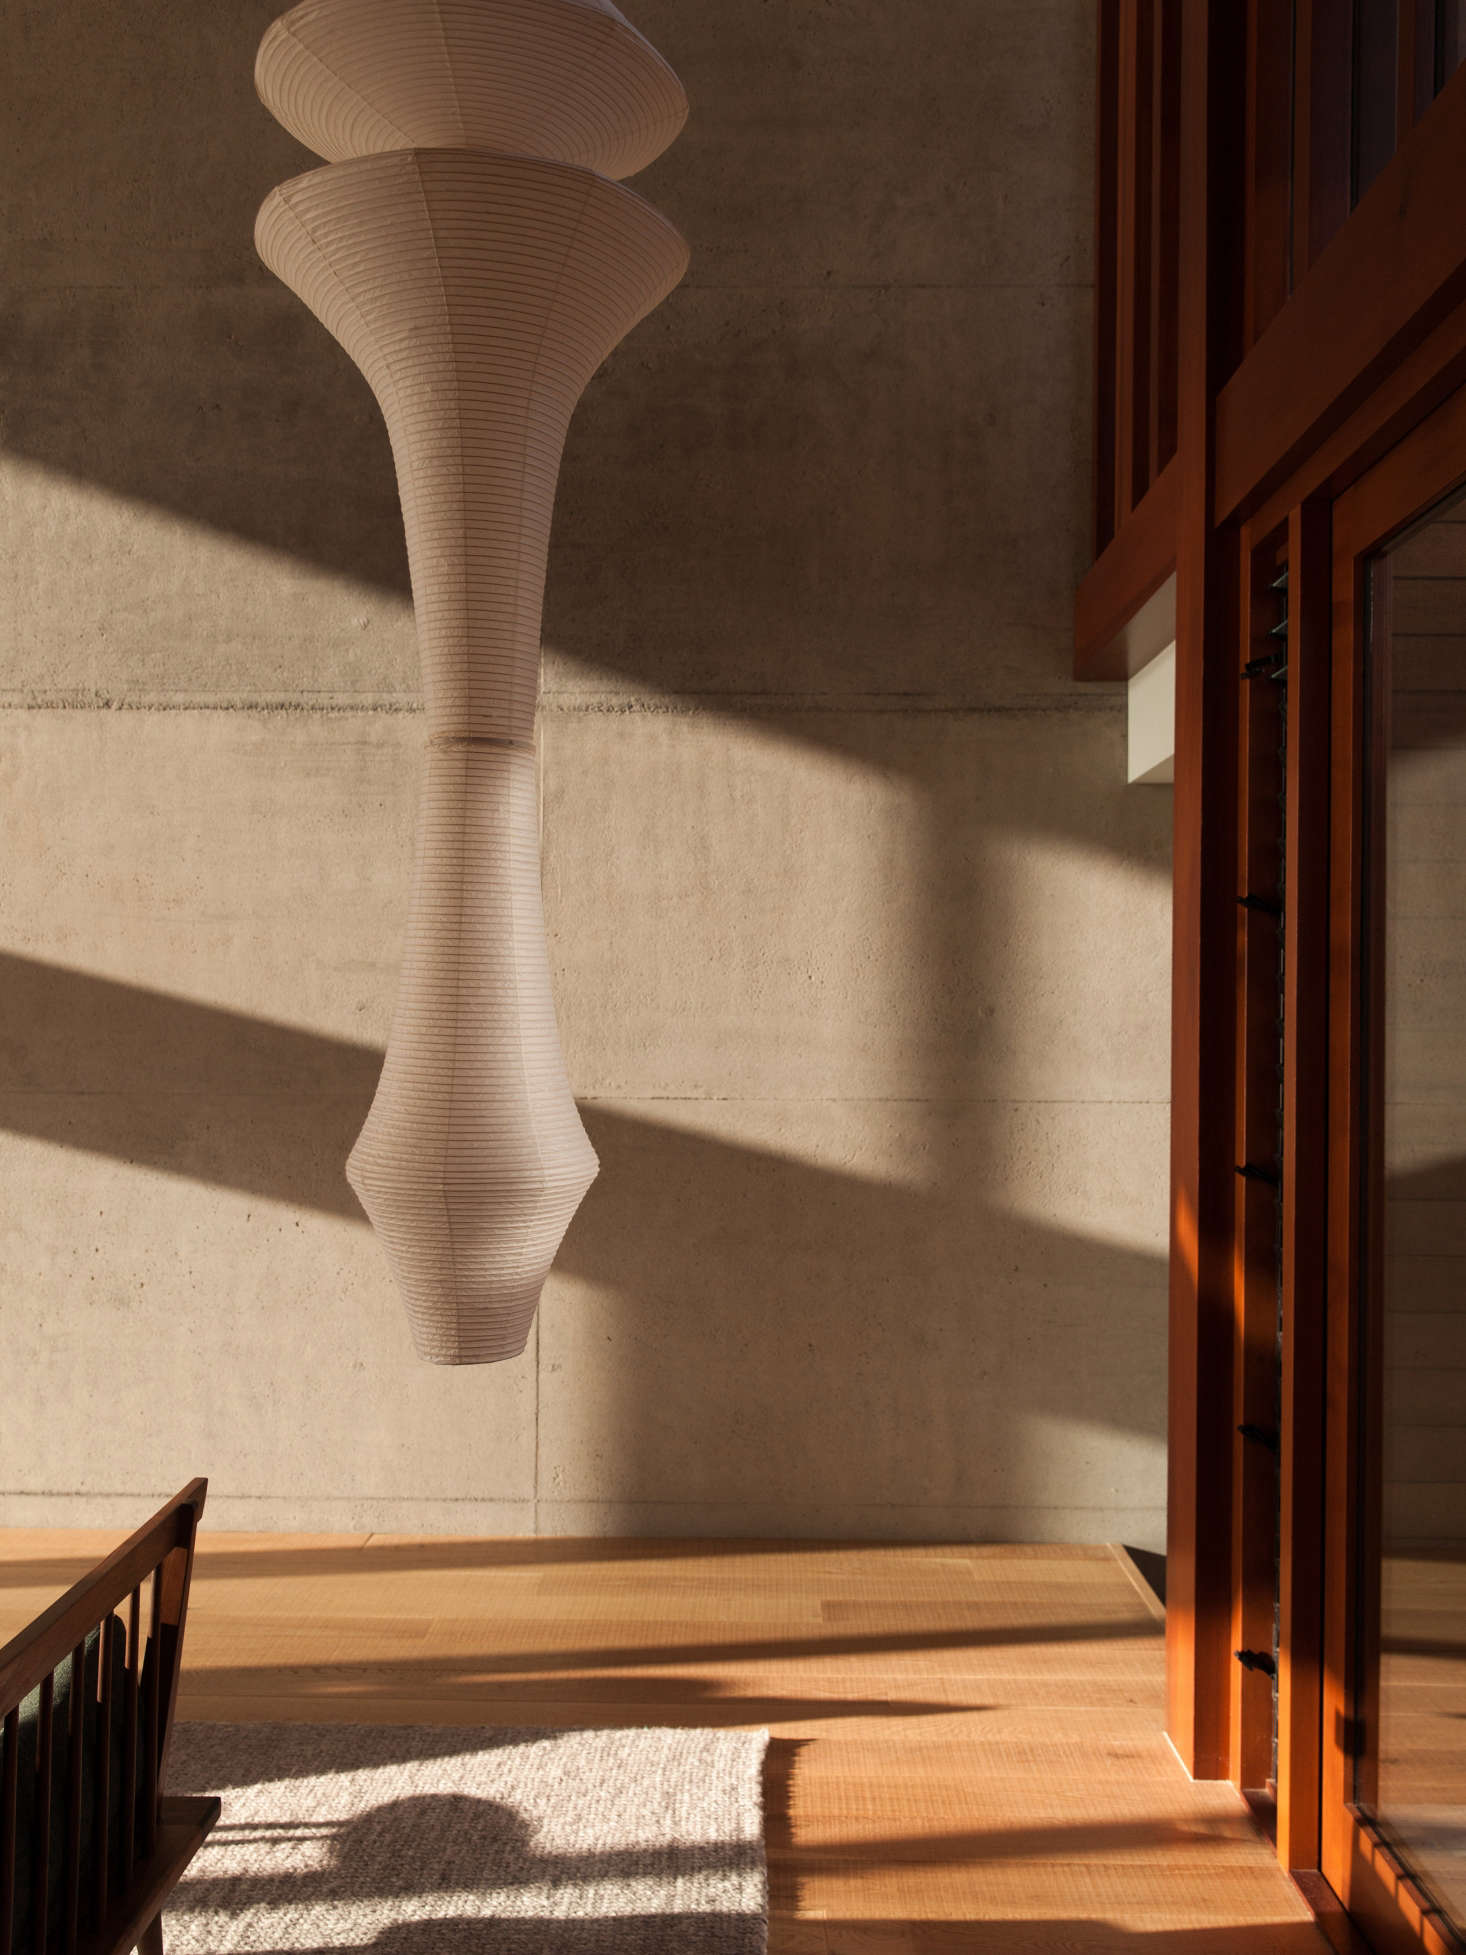 A Noguchi Akari Light Sculpture Model E hangs above a New Zealand wool rug.